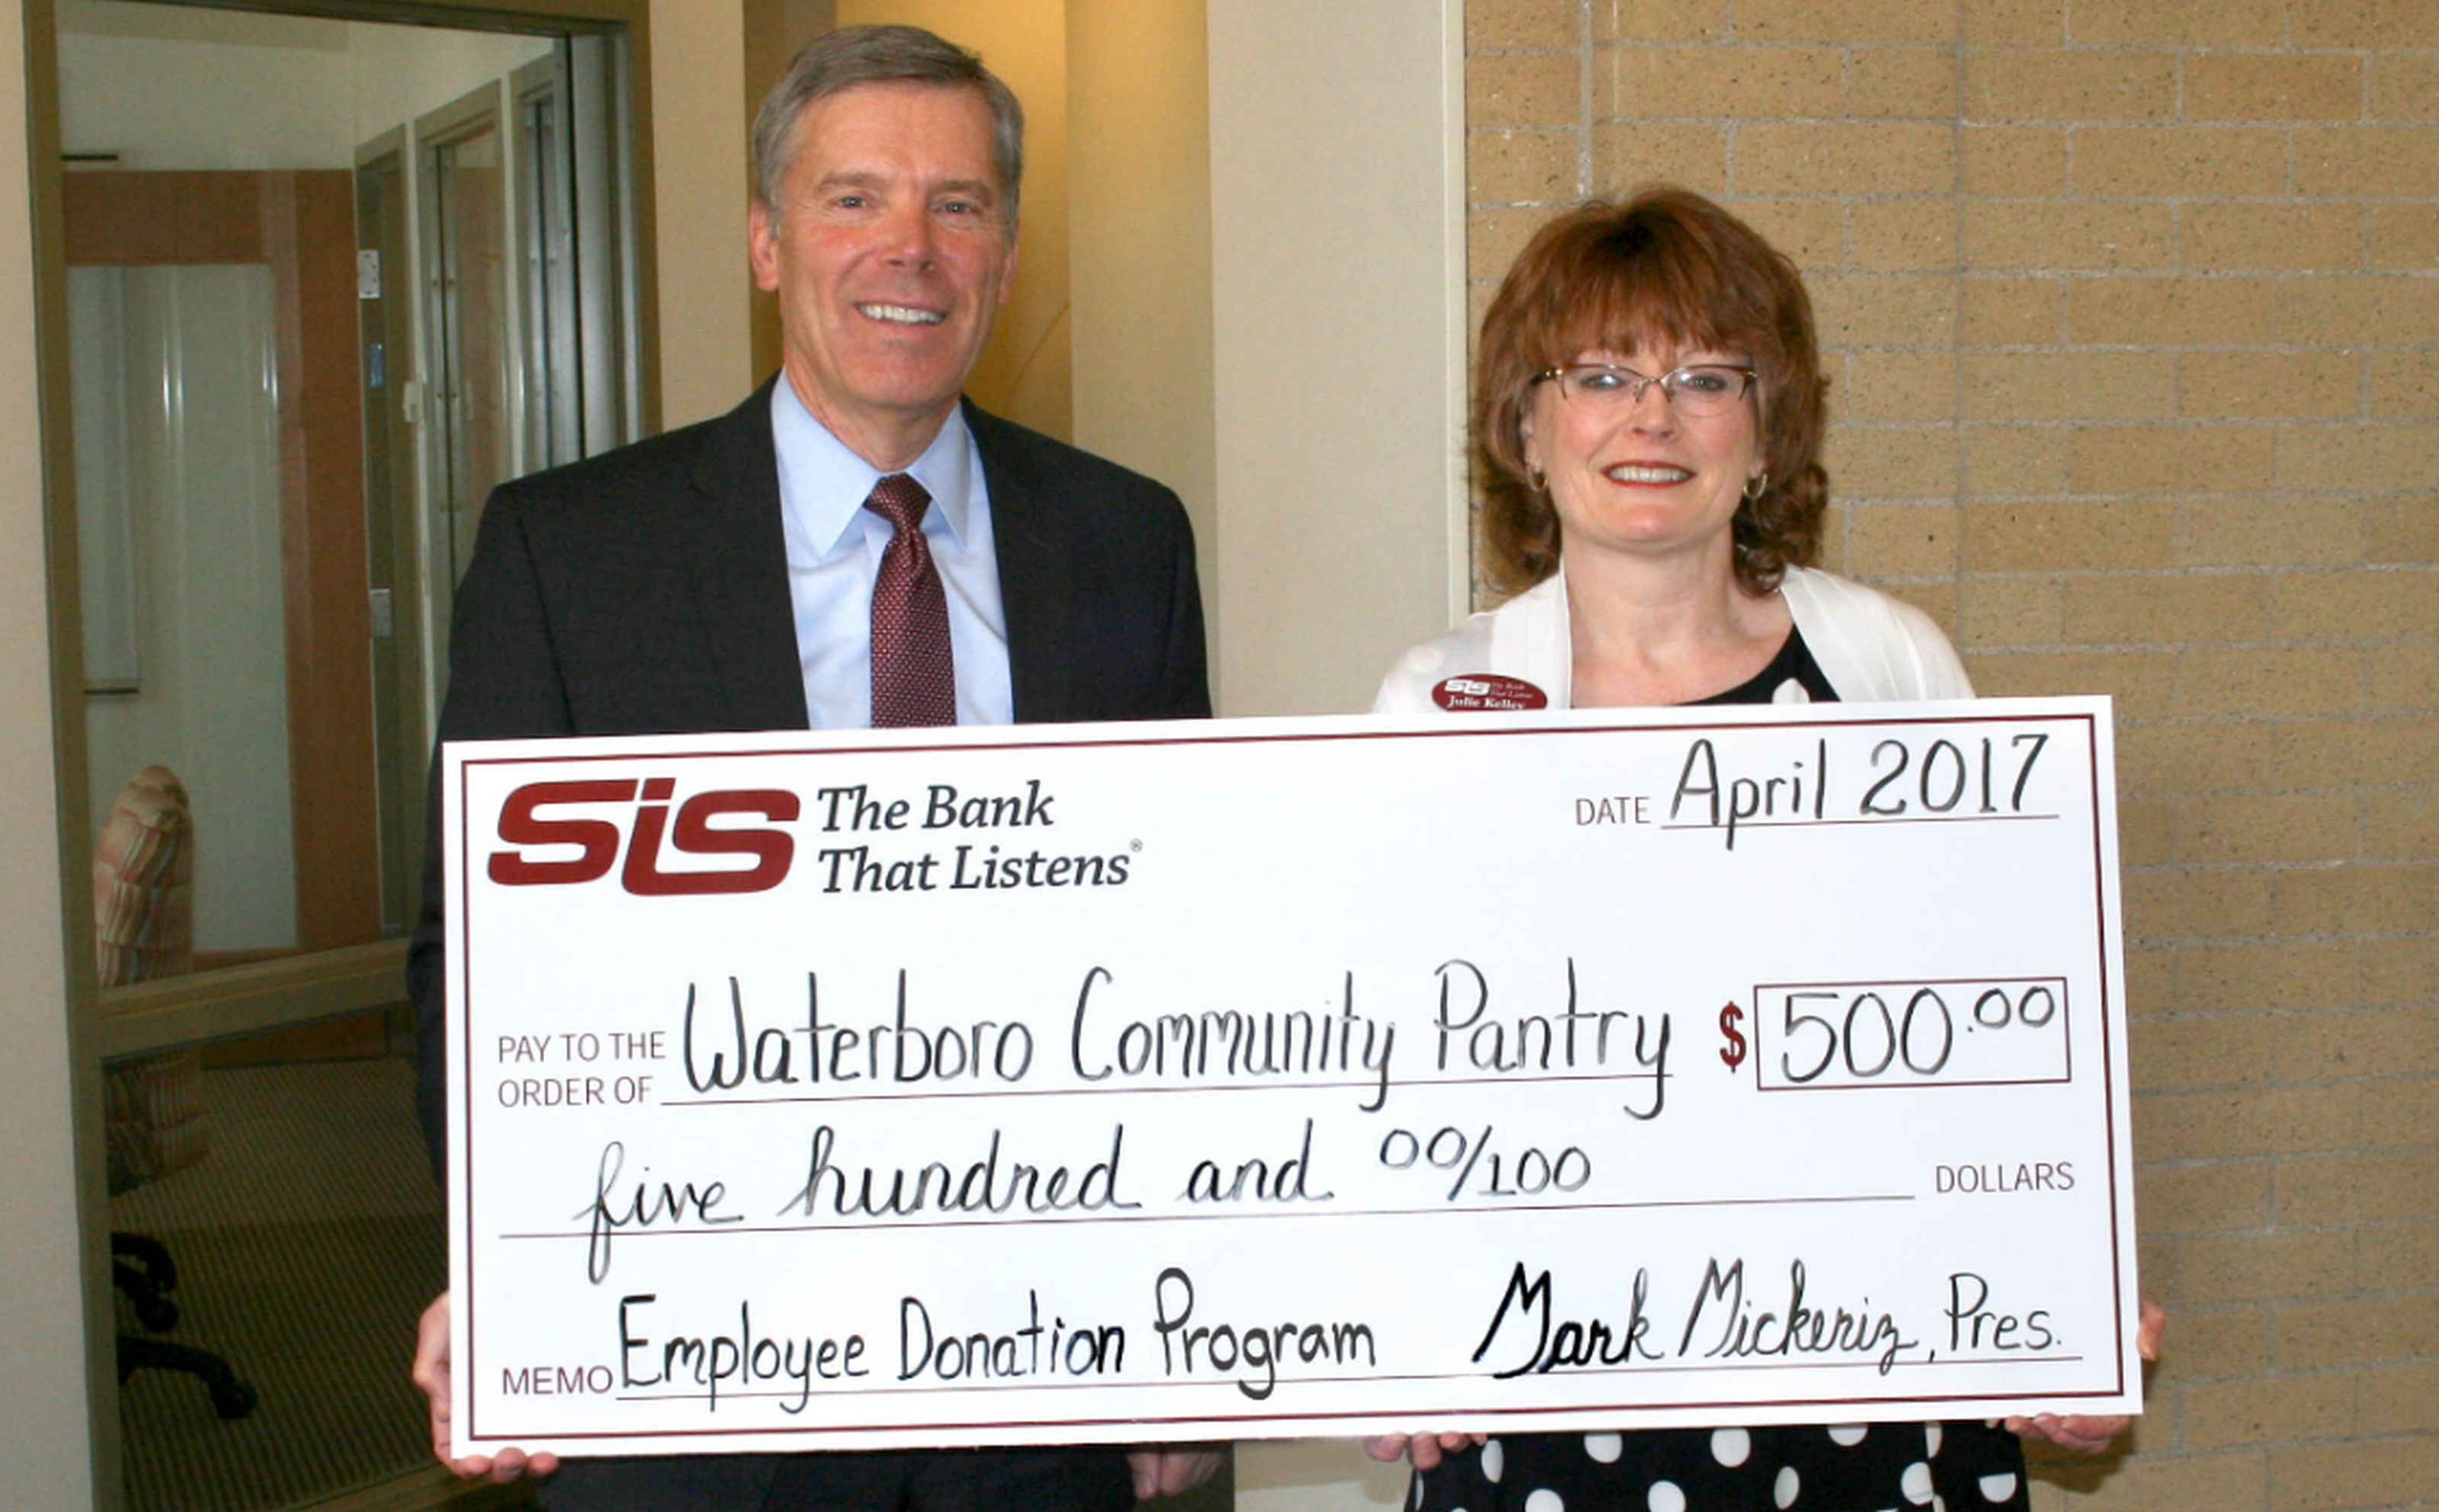 SIS Bank President and& CEO Mark T. Mickeriz, left, presents a check to Julie Kelley, a SIS employee and a volunteer at the Waterboro Community Pantry. SUBMITTED PHOTO